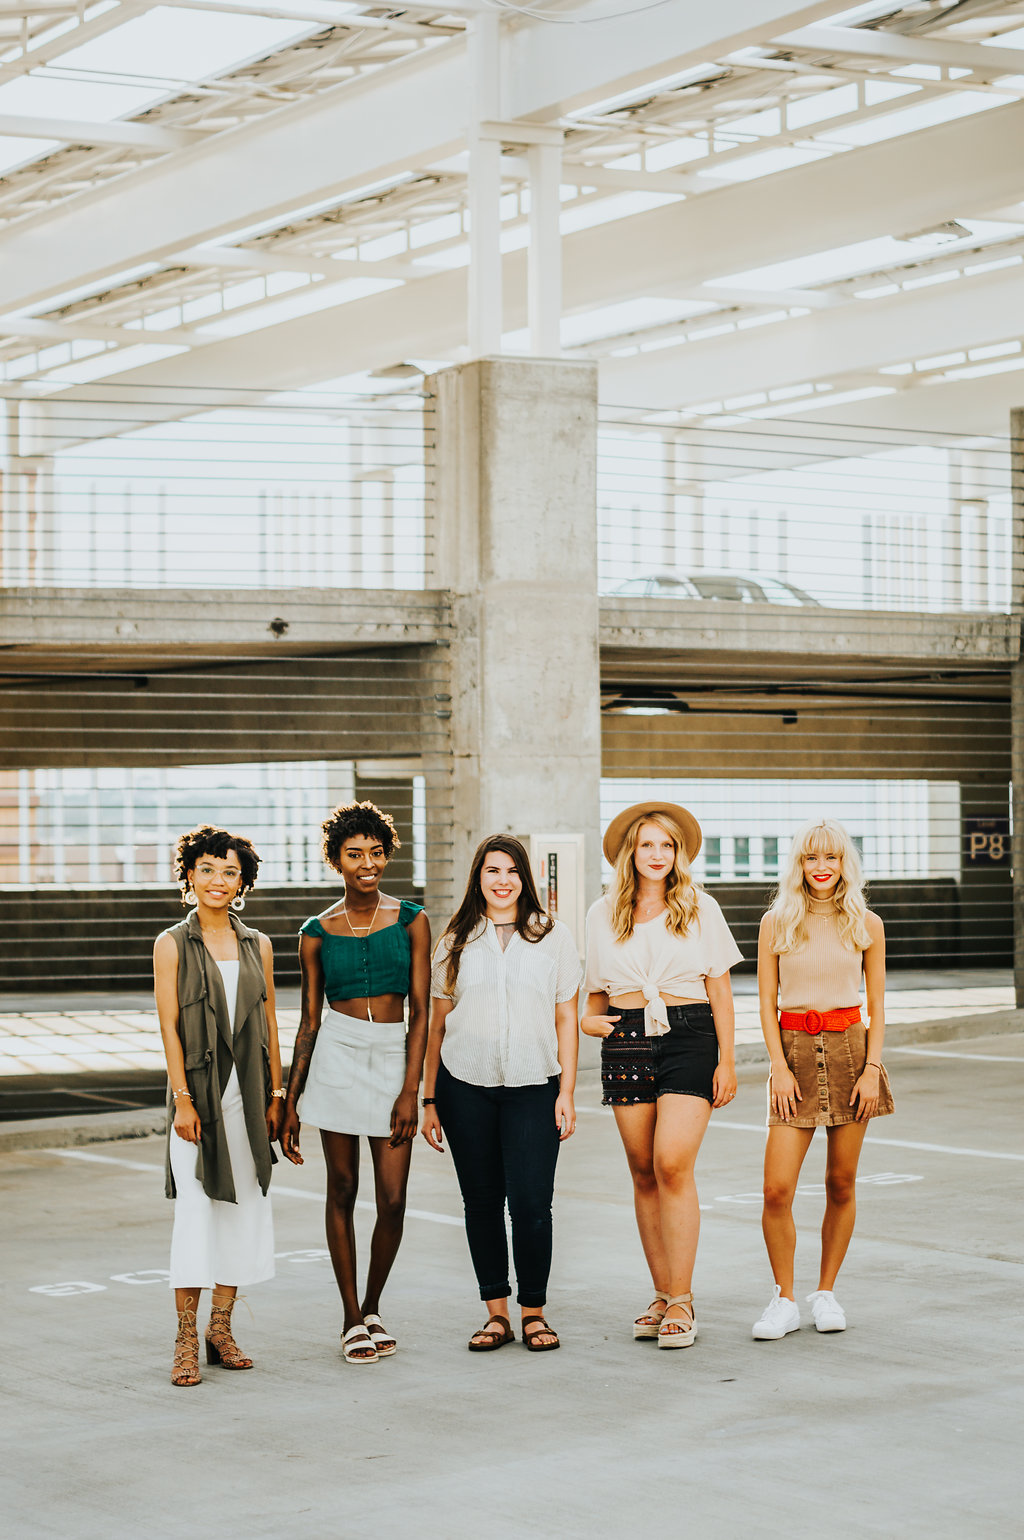 theauthenticwomancampaign-raleighnc-mikaylachristiansenphotography-531.jpg